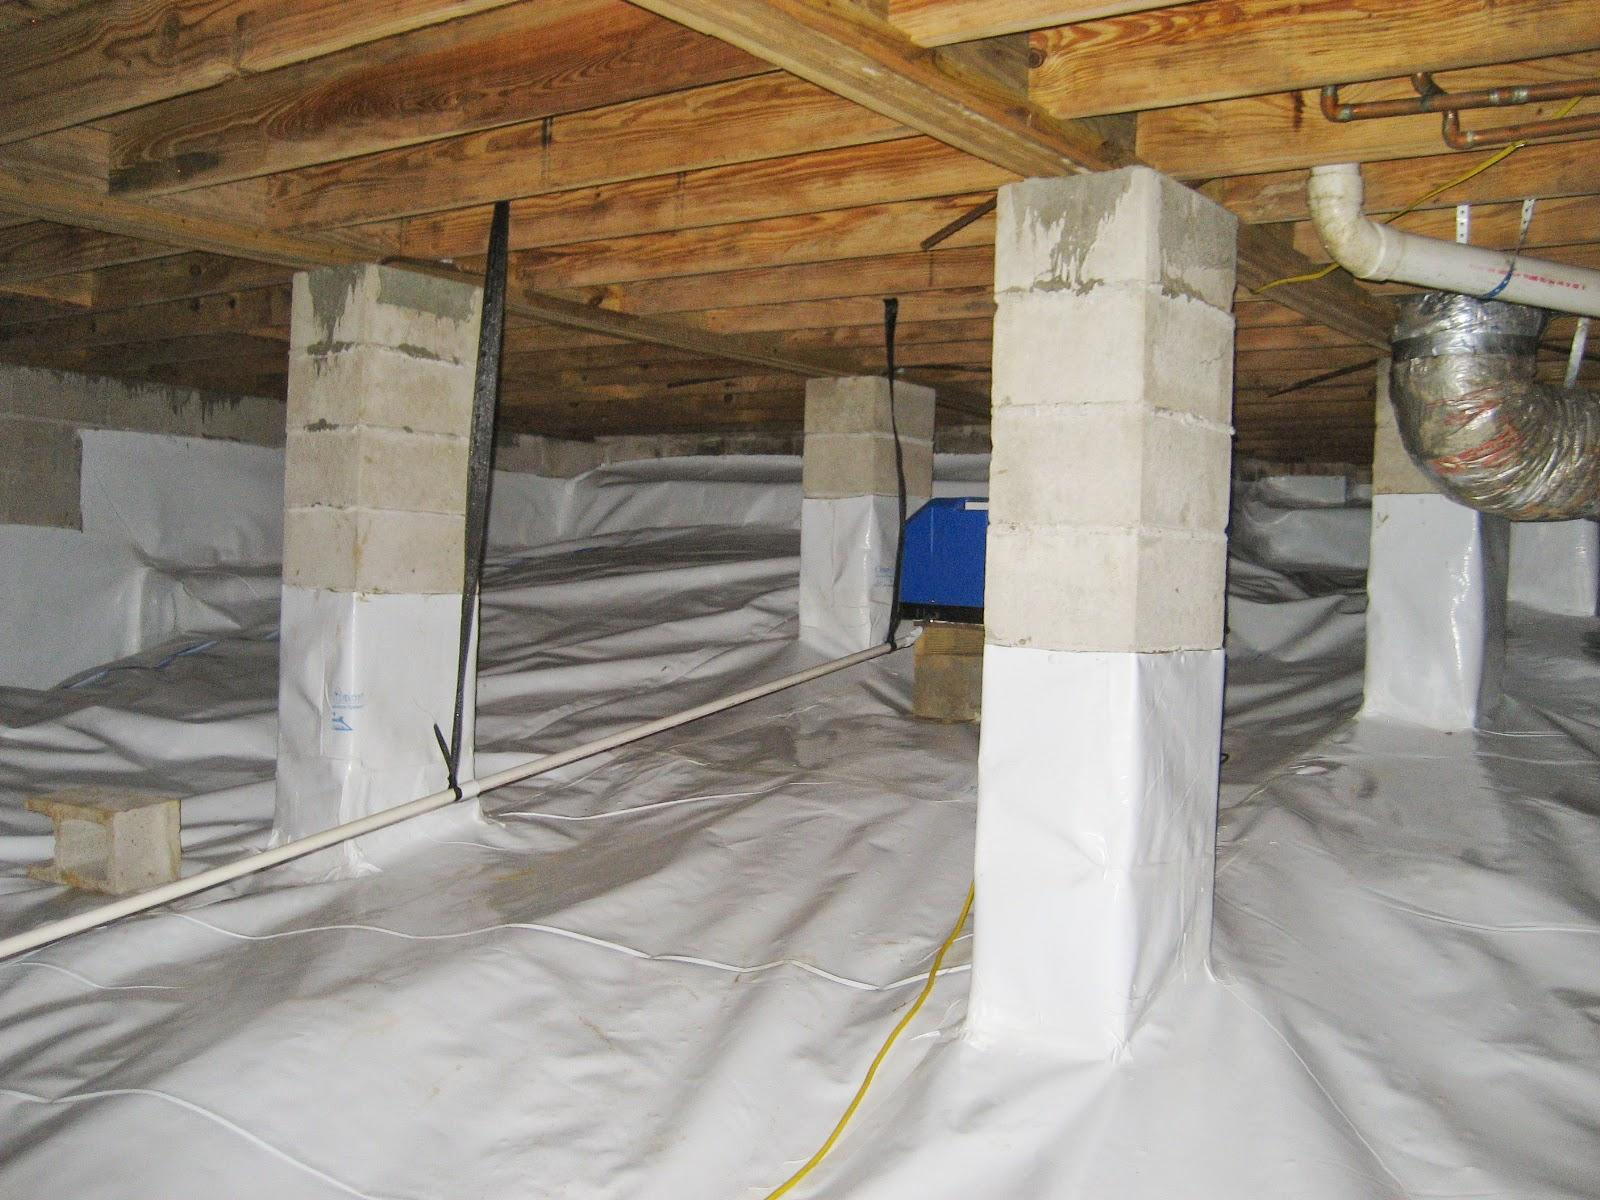 Crawl Space Encapsulation in Tallahassee, Florida - After Photo